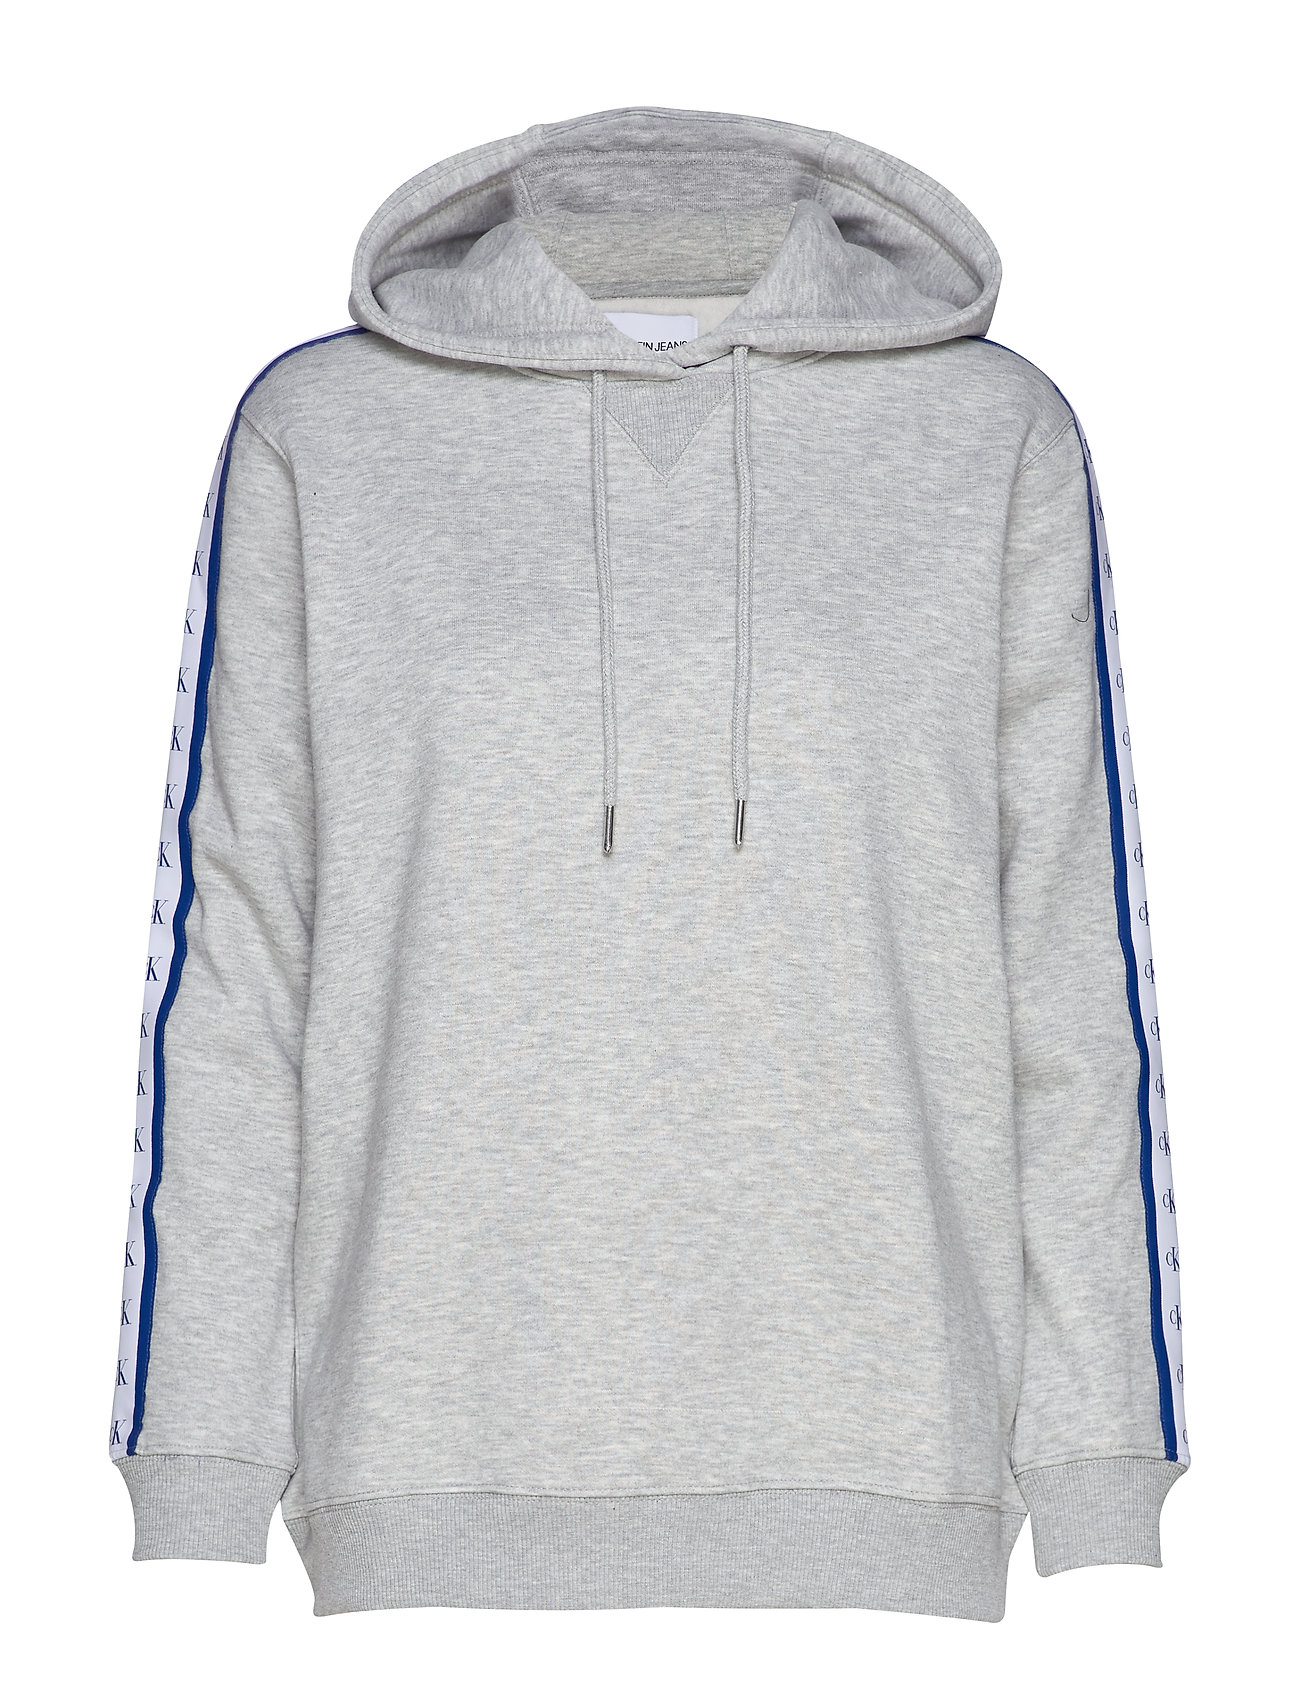 Calvin Klein Jeans MONOGRAM TAPE HOODIE - LIGHT GREY HEATHER